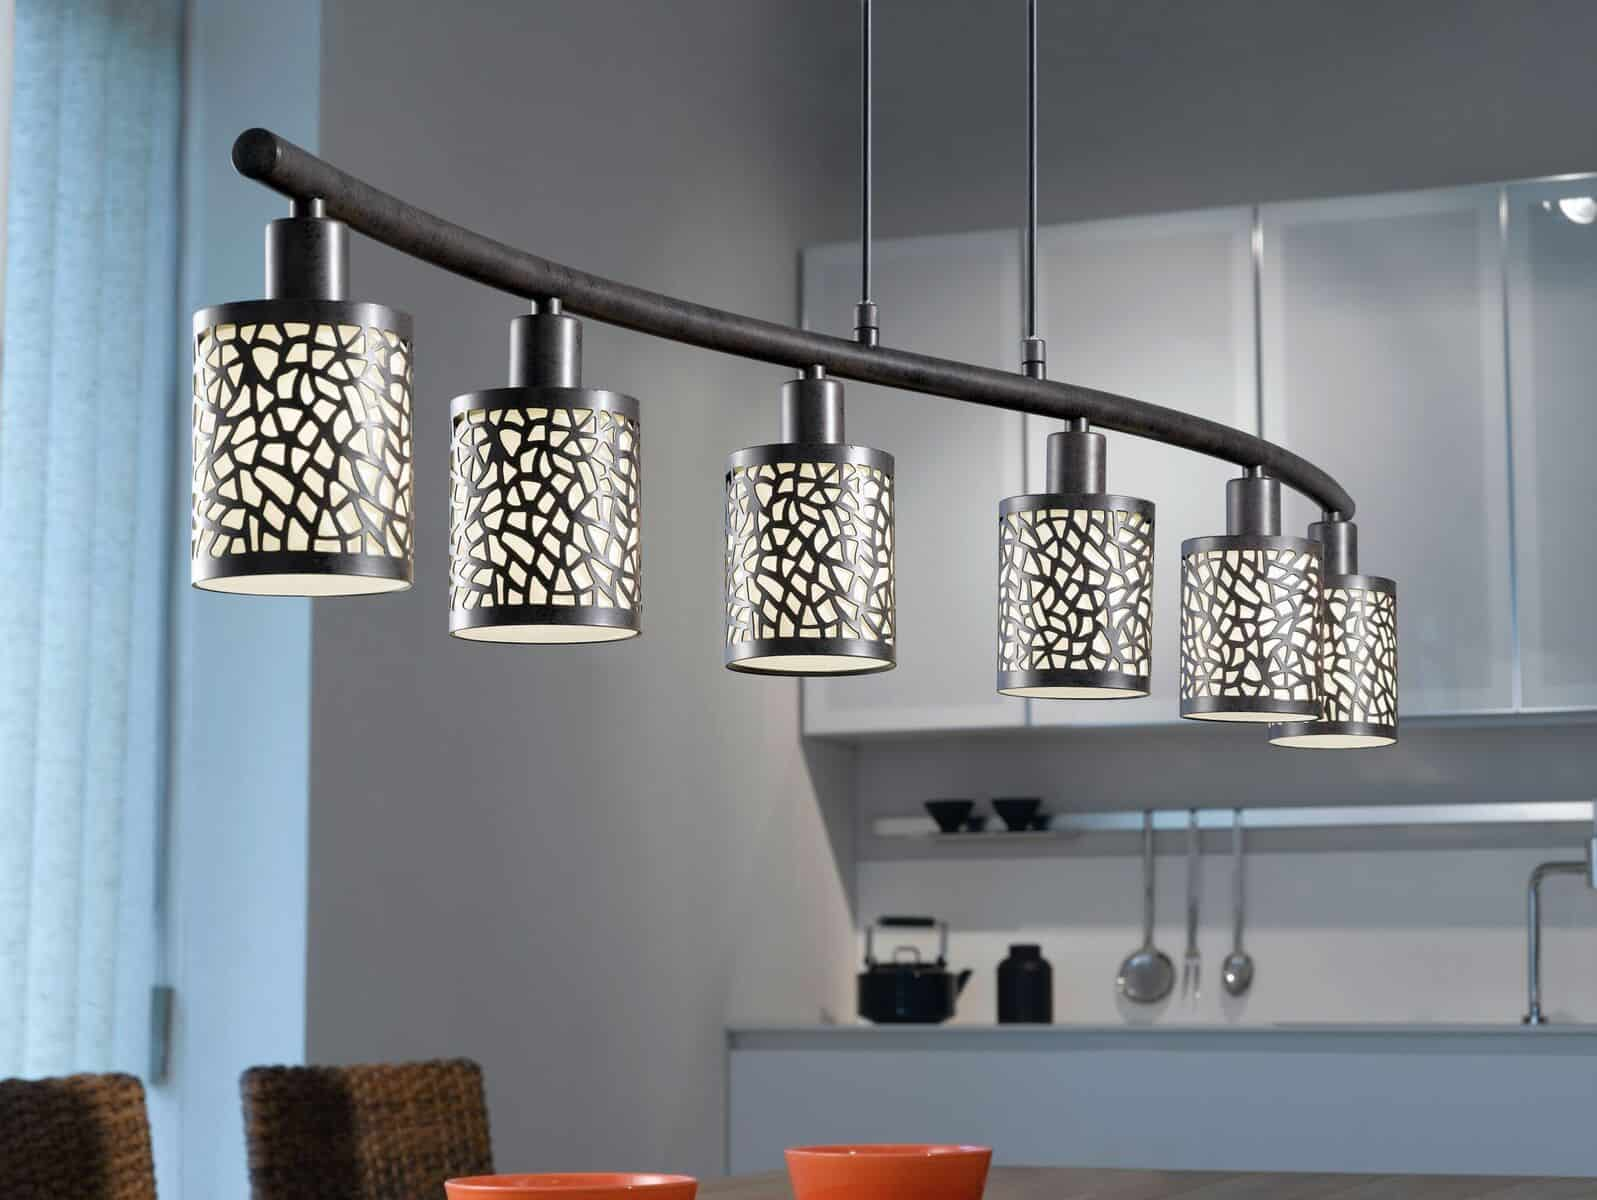 Lighting And Design Solutions